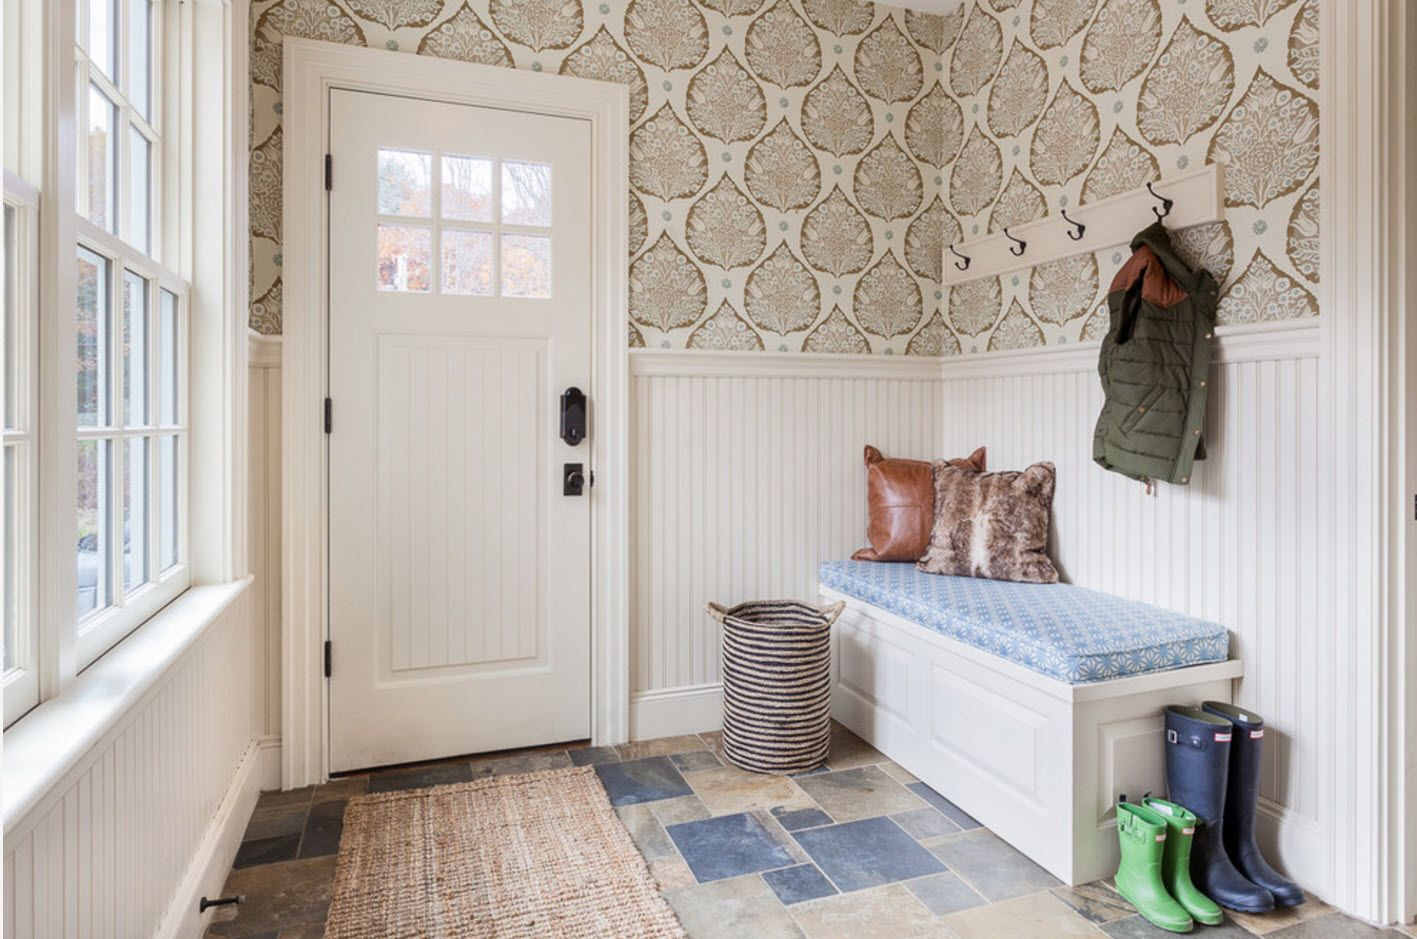 Classic American country style with wallpapered walls